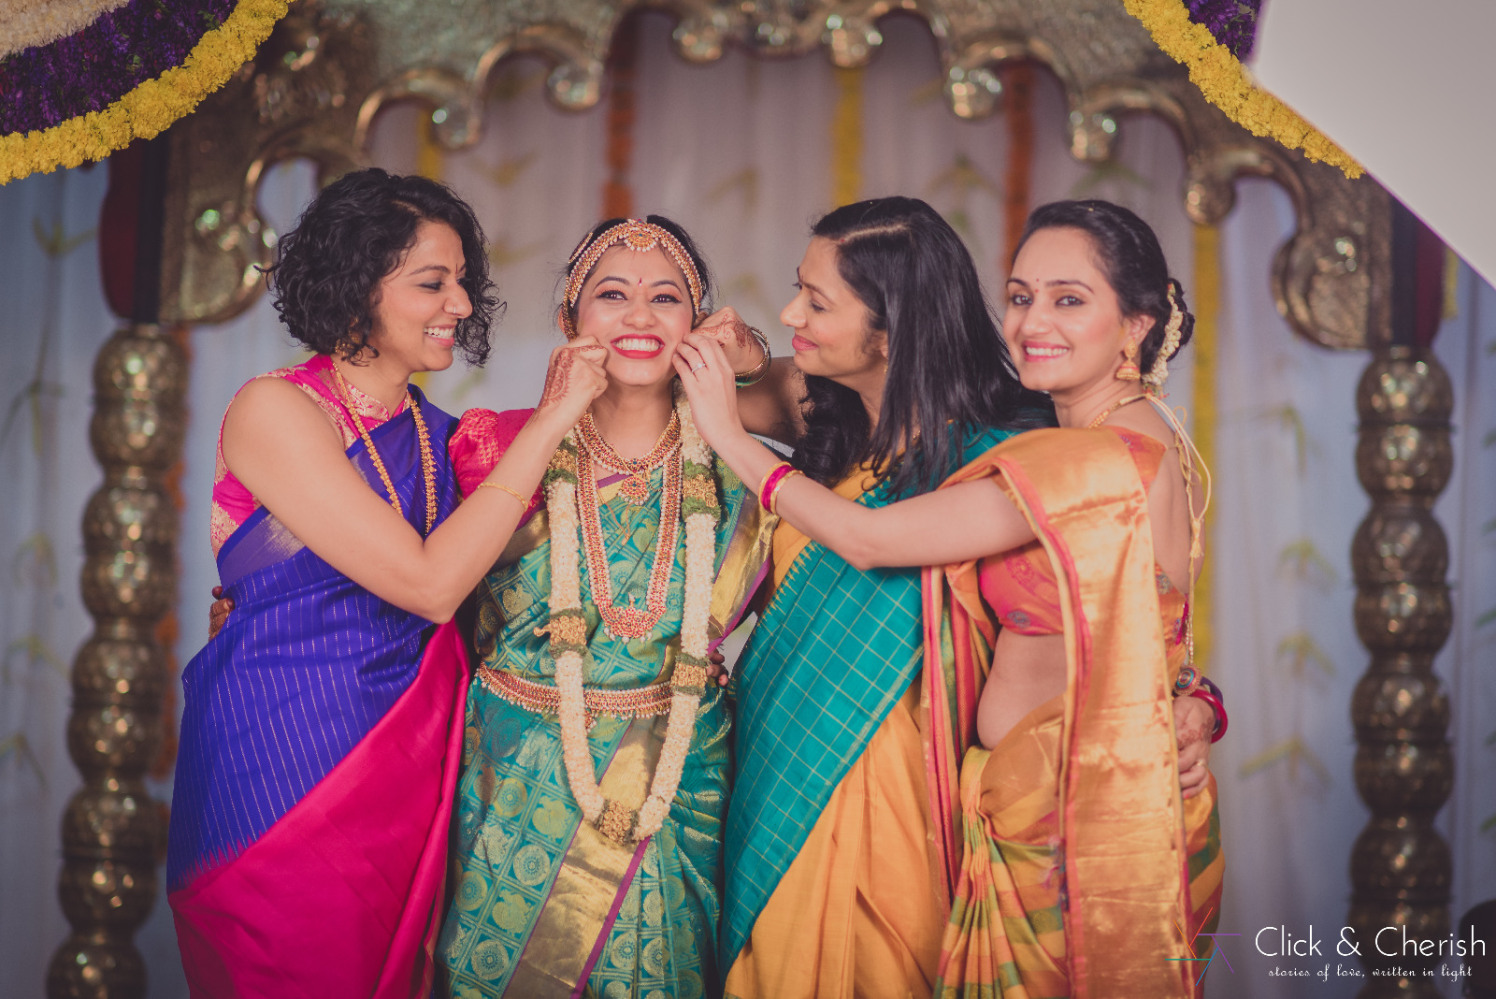 Coral Green Saree With Golden Borders by Dushyantha Kumar C Wedding-photography Bridal-jewellery-and-accessories | Weddings Photos & Ideas